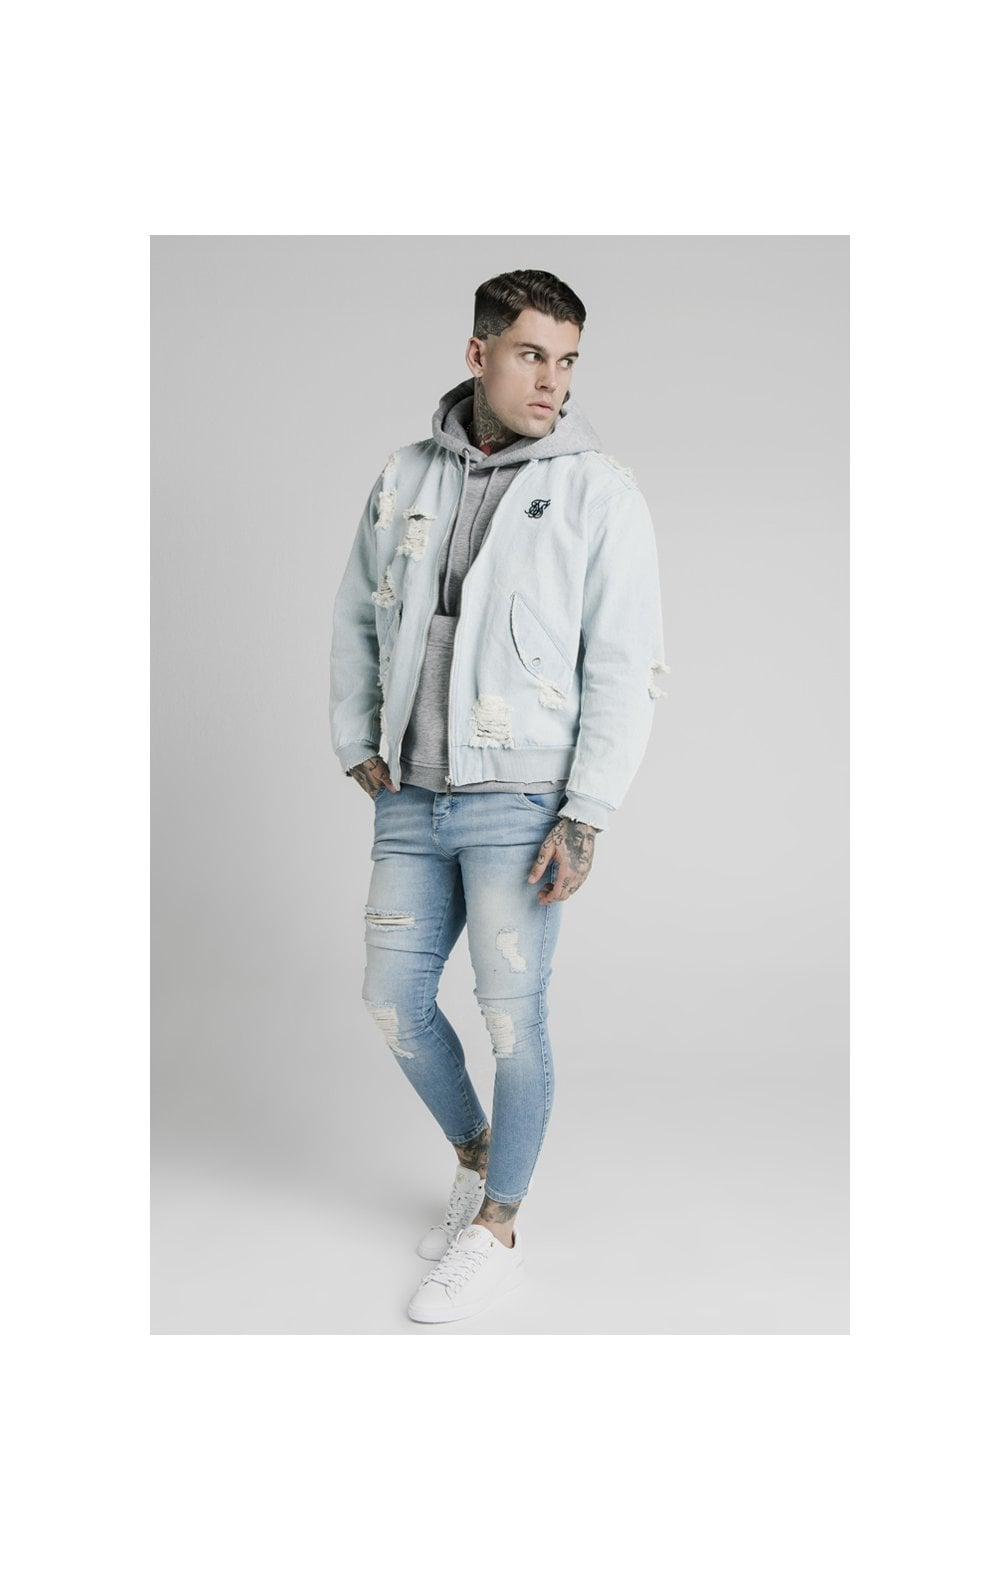 SikSilk Distressed Denim Bomber Jacket - Light Blue (2)